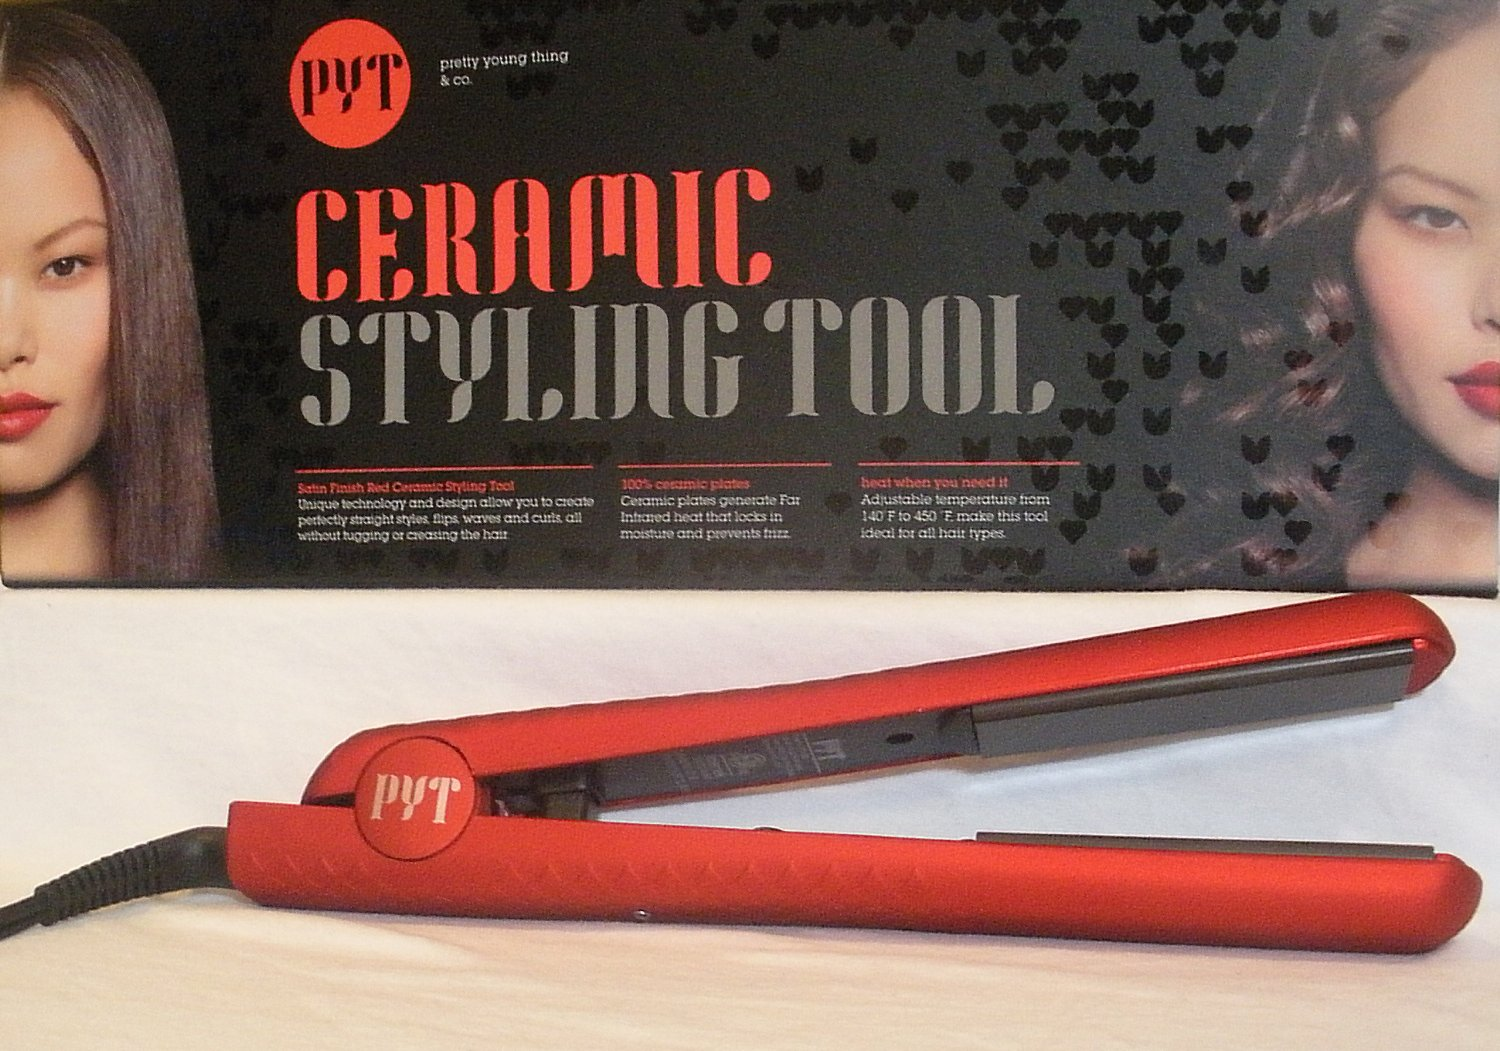 Best Ceramic Flat Iron Find The Best Flat Iron For